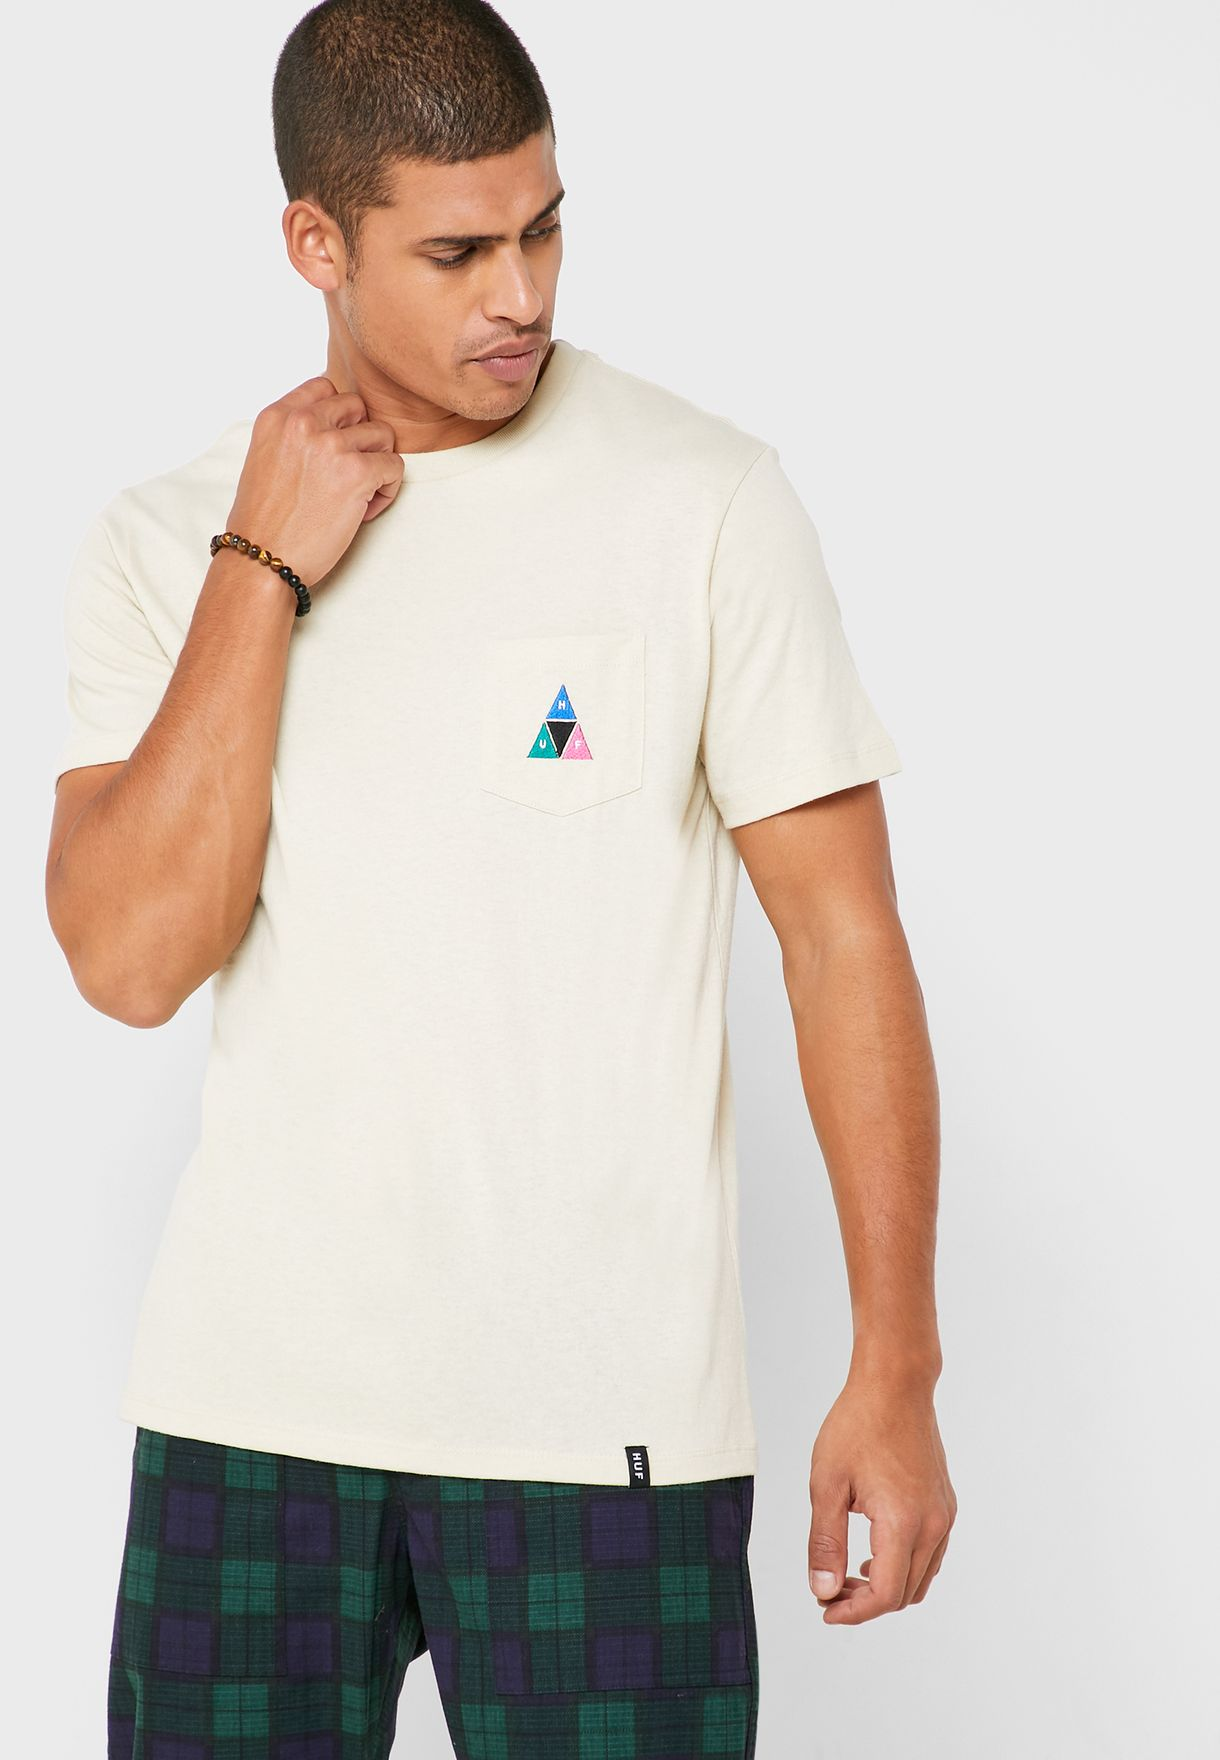 Prism Pocket T-Shirt